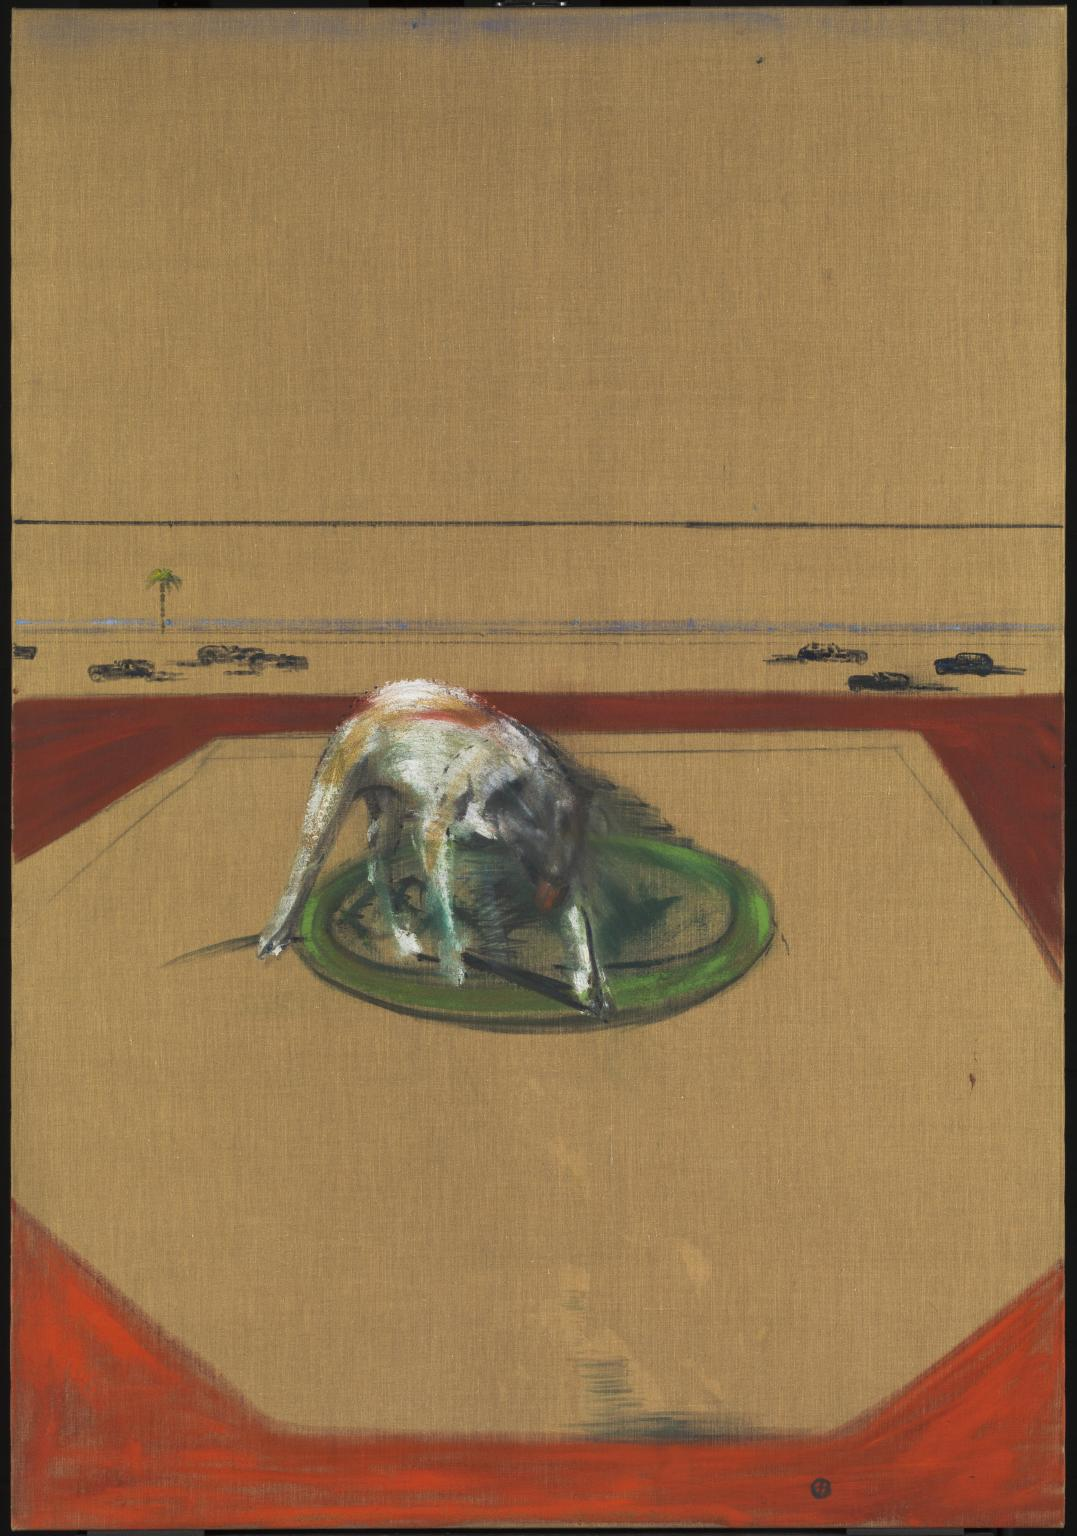 Study of a Dog 1952 Francis Bacon 1909-1992 Presented by Eric Hall 1952